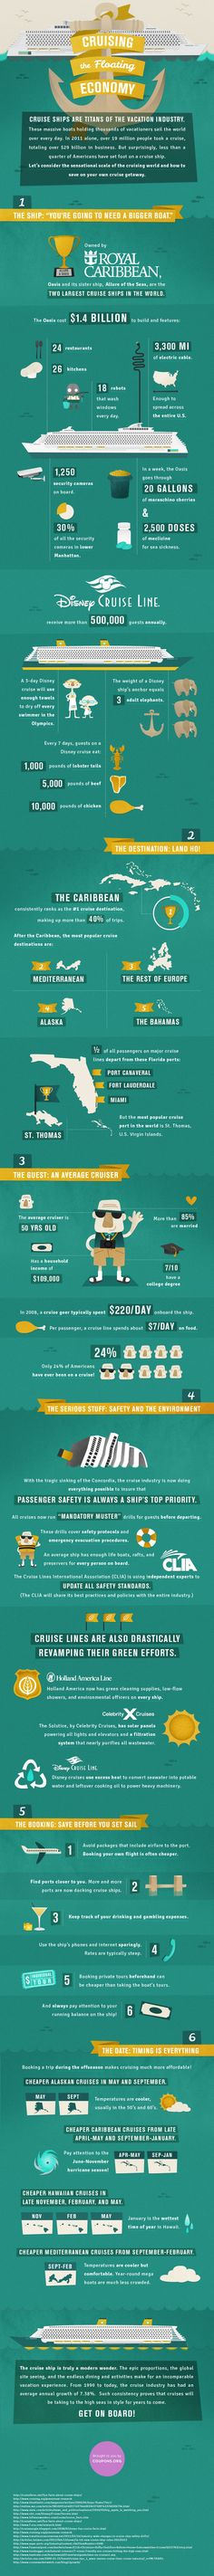 From the huge ships to huge savings, cruising is a great way to see the world. This graphic not only shows the staggering numbers behind the largest l